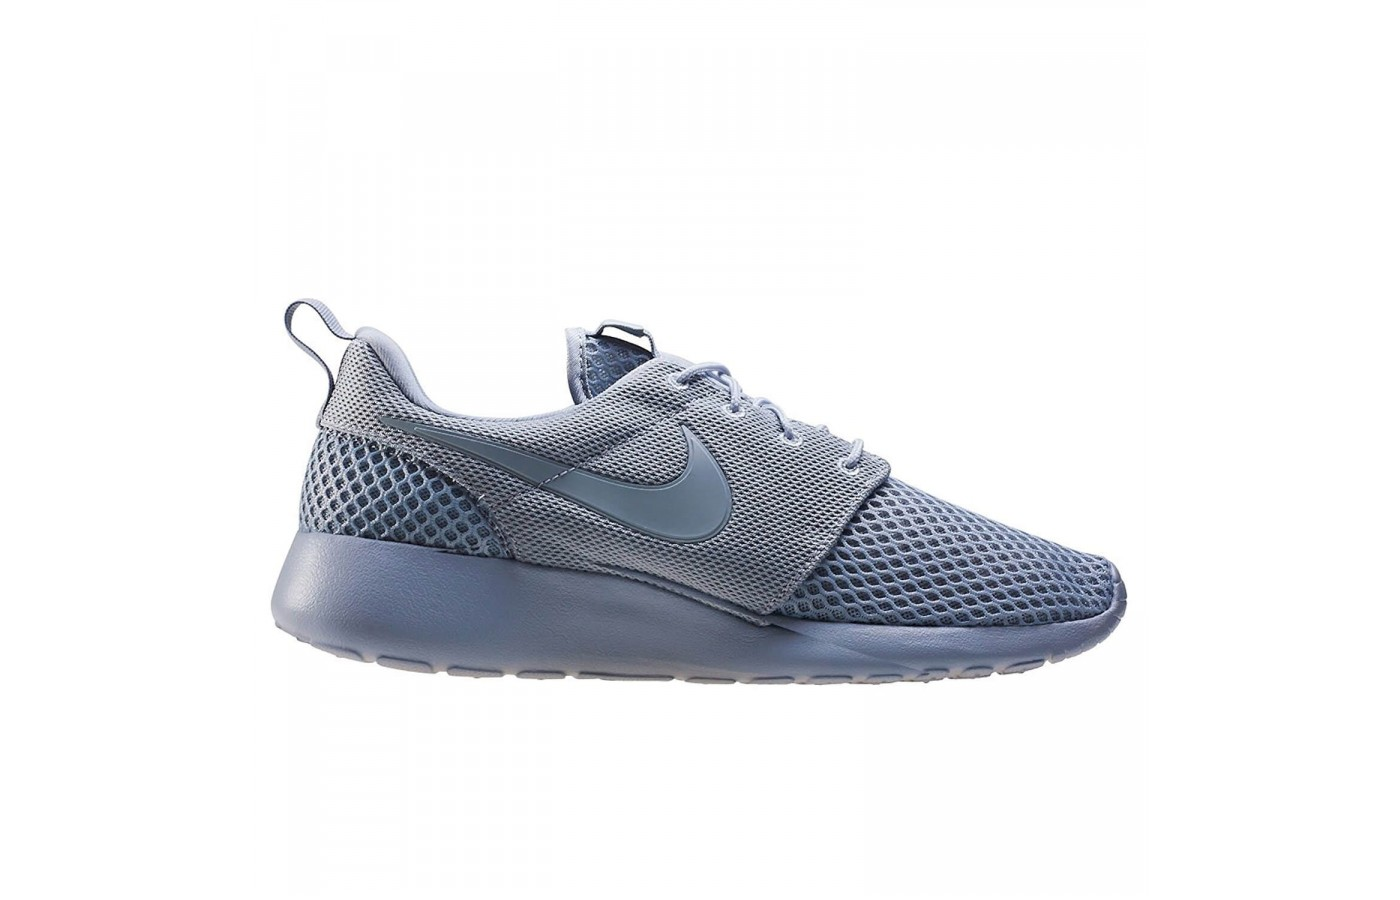 770ab7d99d7b ... The Nike Roshe One SE features a midsole with a high drop made from  Phylon EVA ...